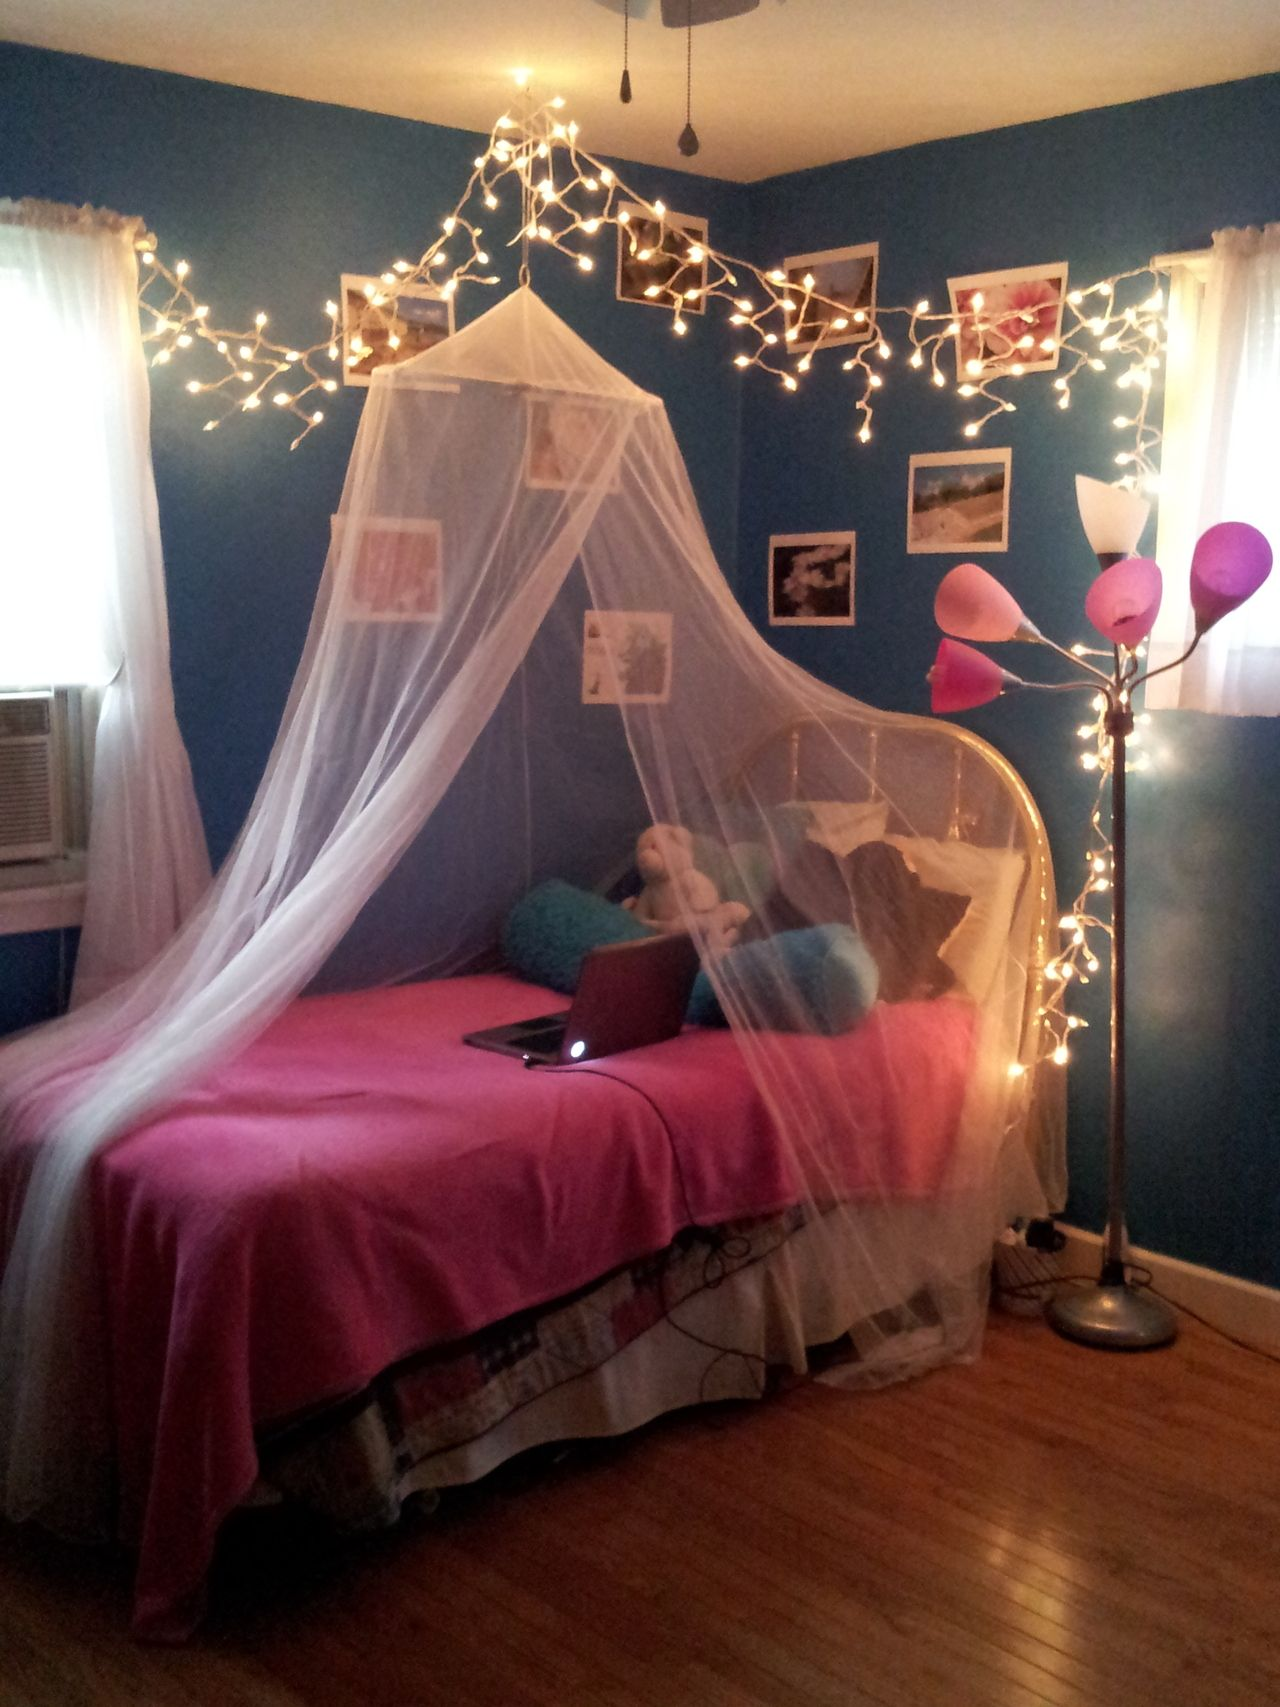 Fairy Lights are literally the best possible